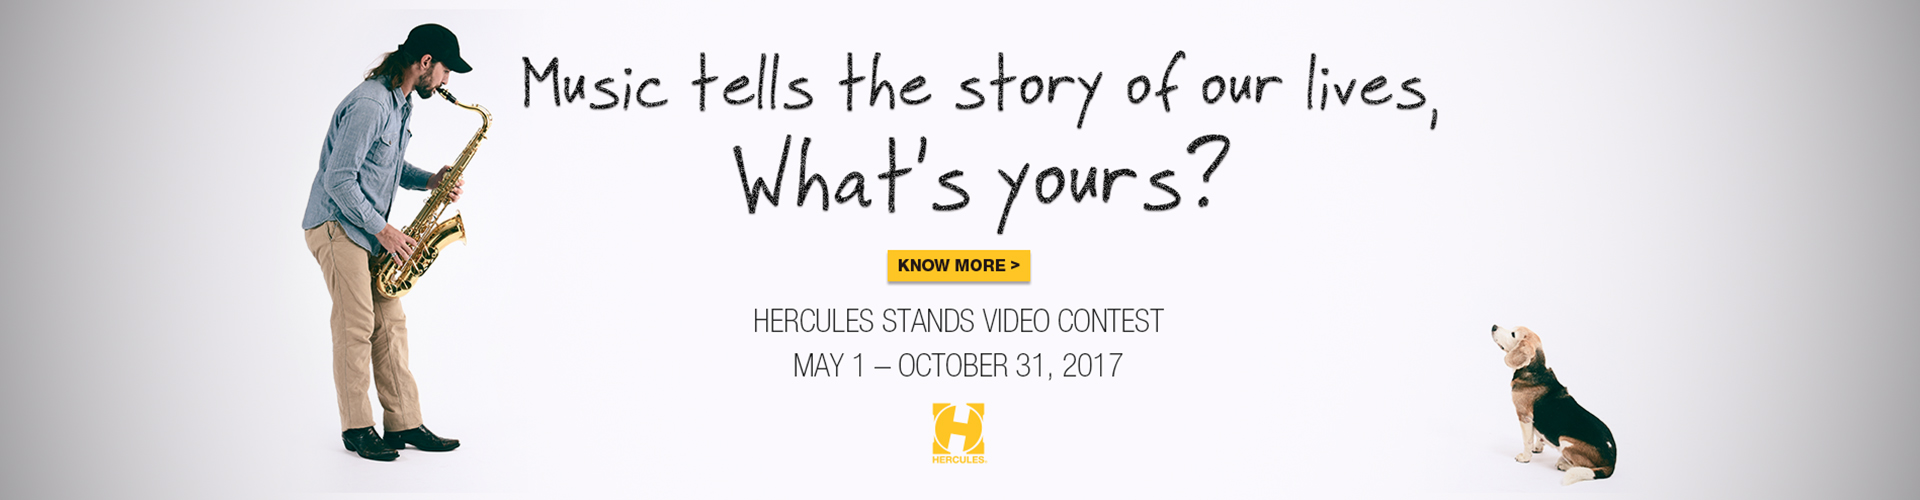 Hercules Stands Video Contest